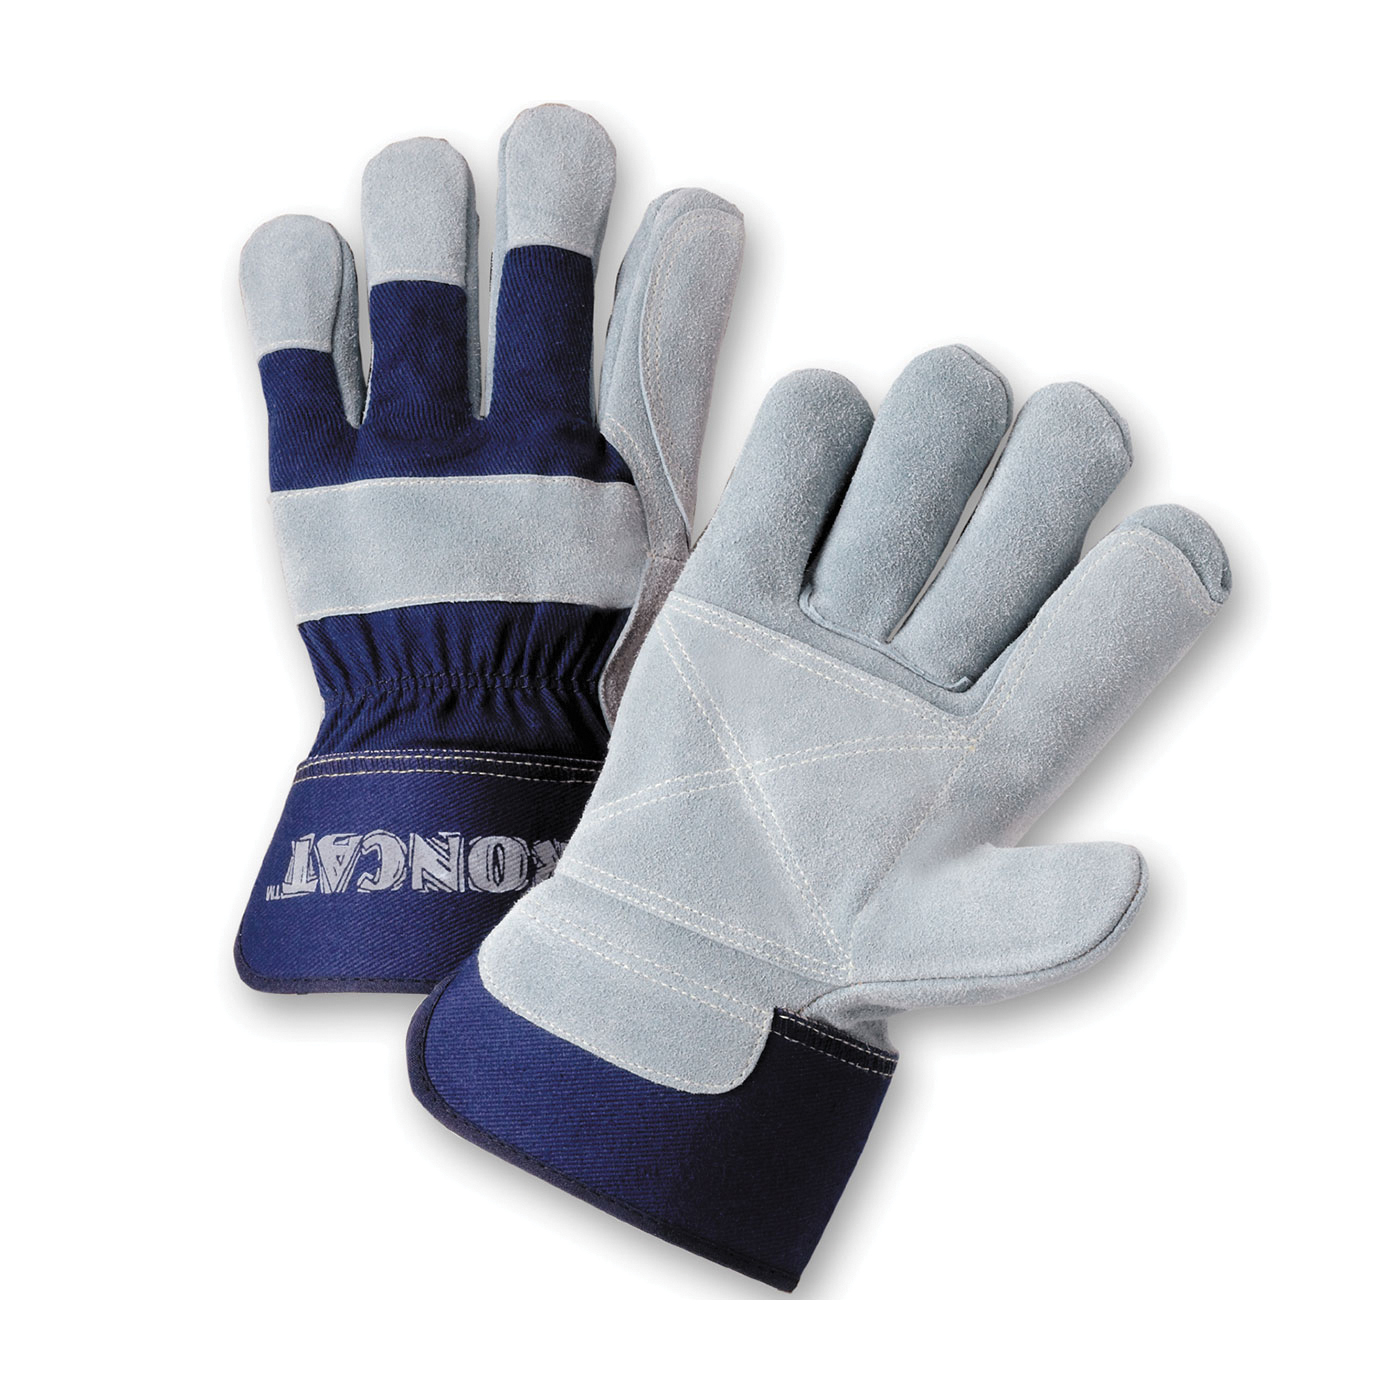 Ironcat® IC5DP/XL Welding Gloves, XL, Canvas/Kevlar®/Split Cowhide Leather, Blue/Gray, Unlined Lining, Rubberized Safety Cuff, 10-7/8 in L